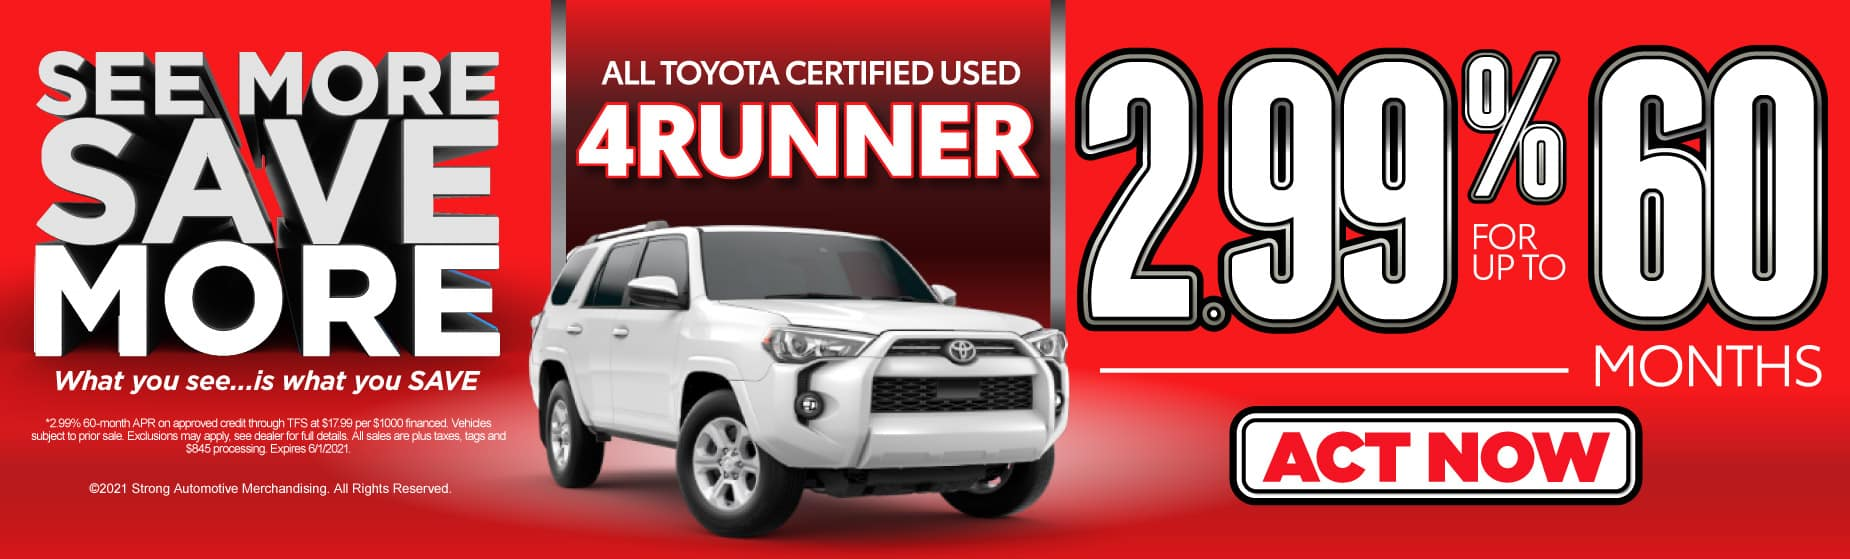 Certified Used 4Runner | 2.99% for up to 60 months | Act Now